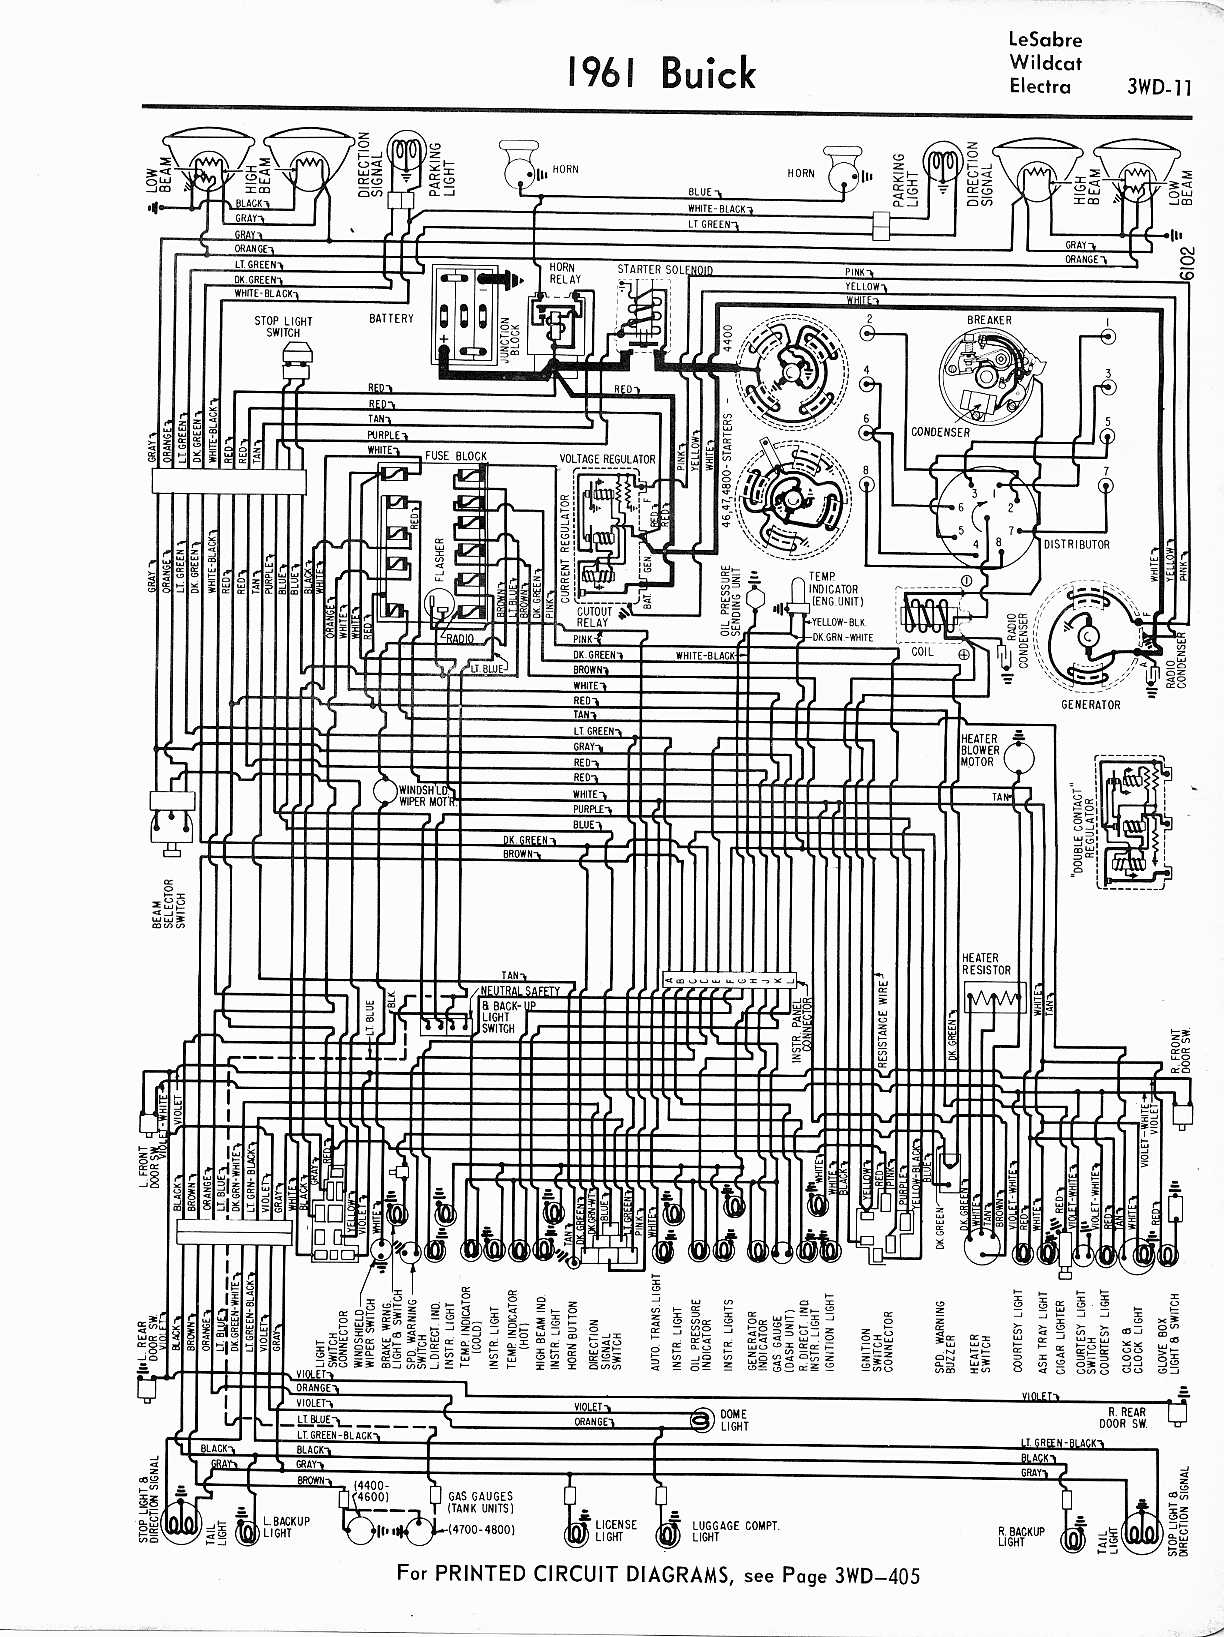 Buick Wiring Diagrams: 1957-1965The Old Car Manual Project